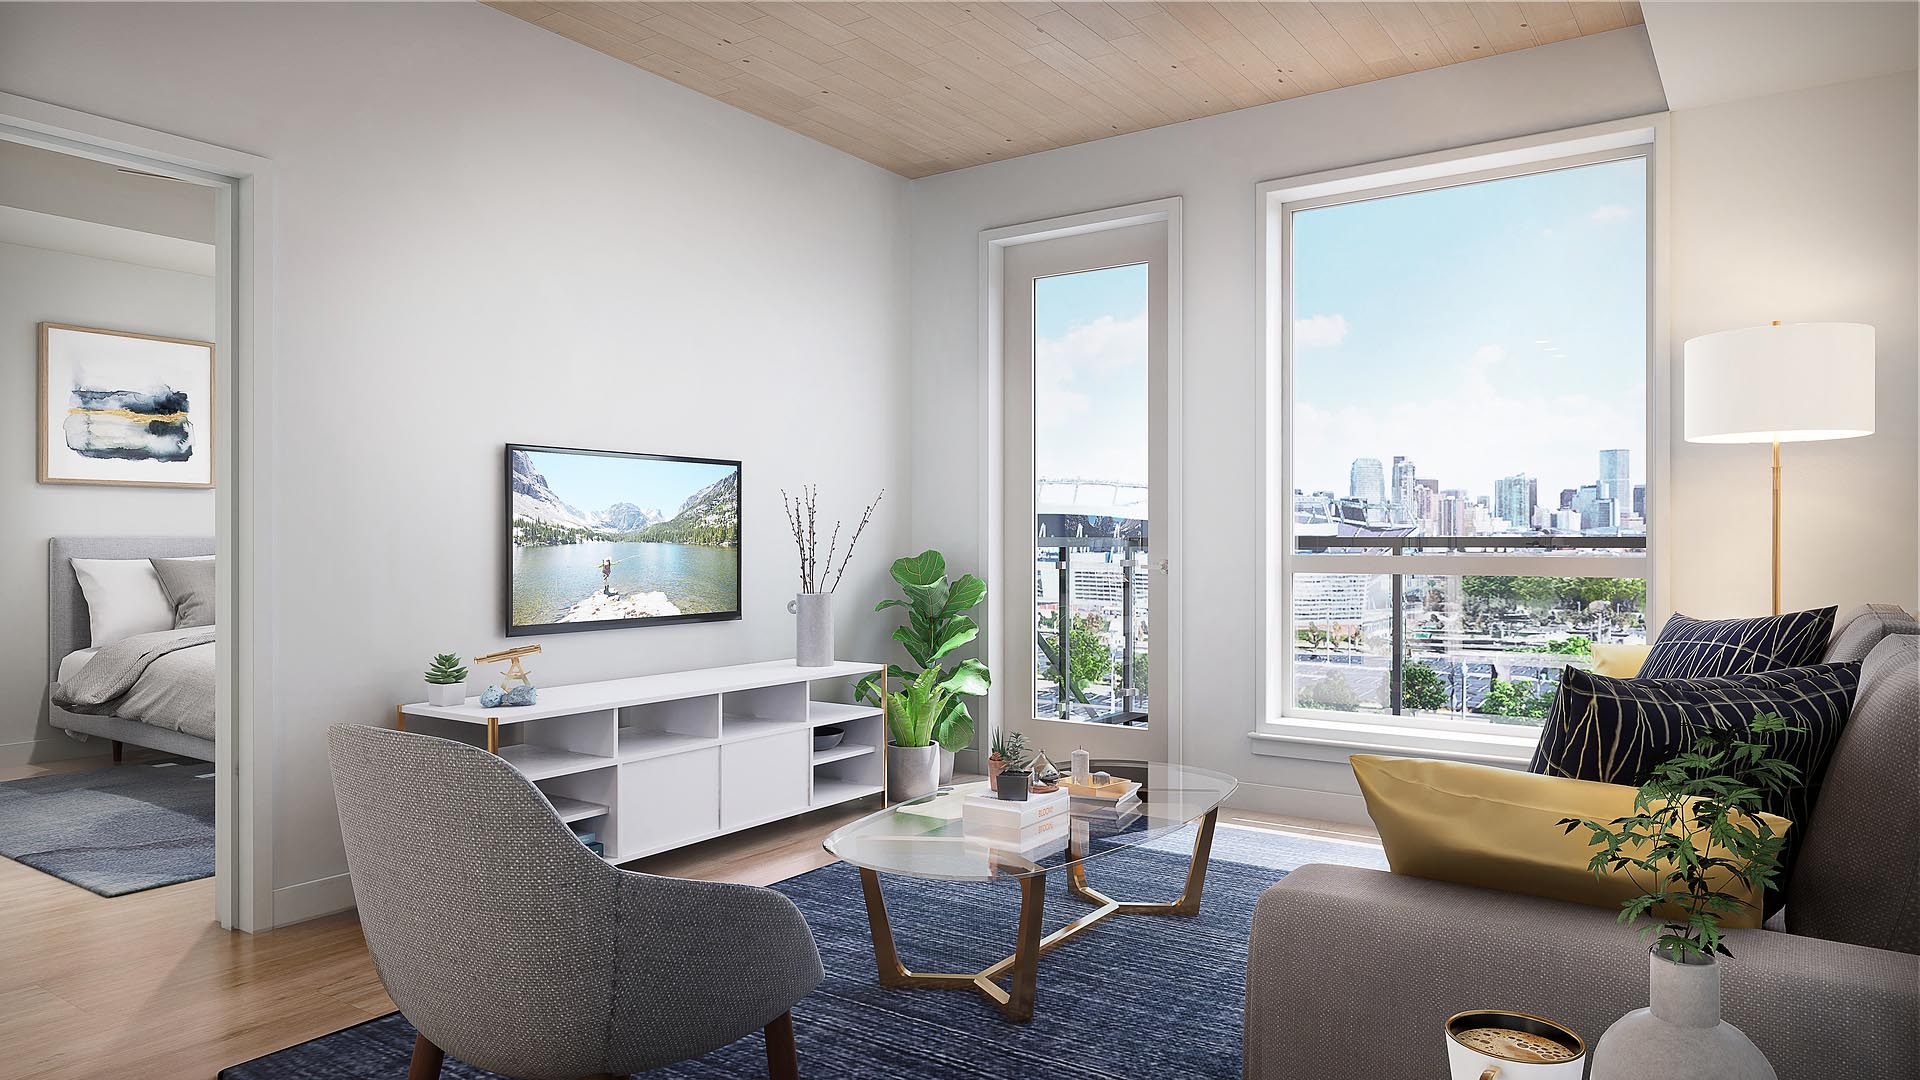 A model apartment living room with TV